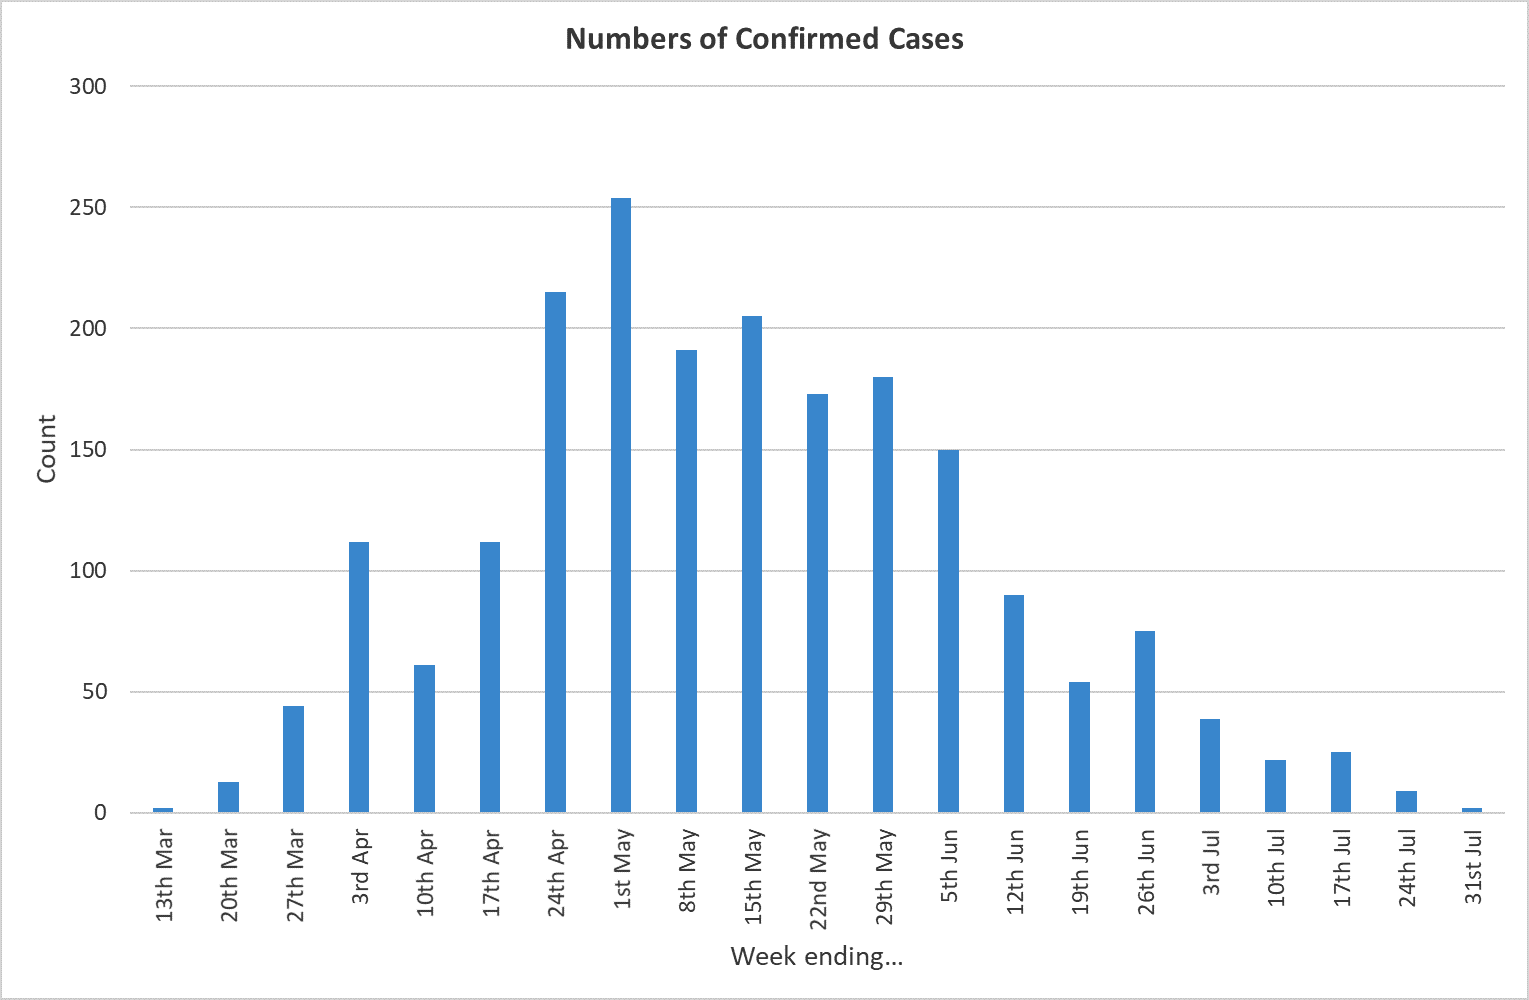 Graph showing number of confirmed cases in Doncaster up to 31 July